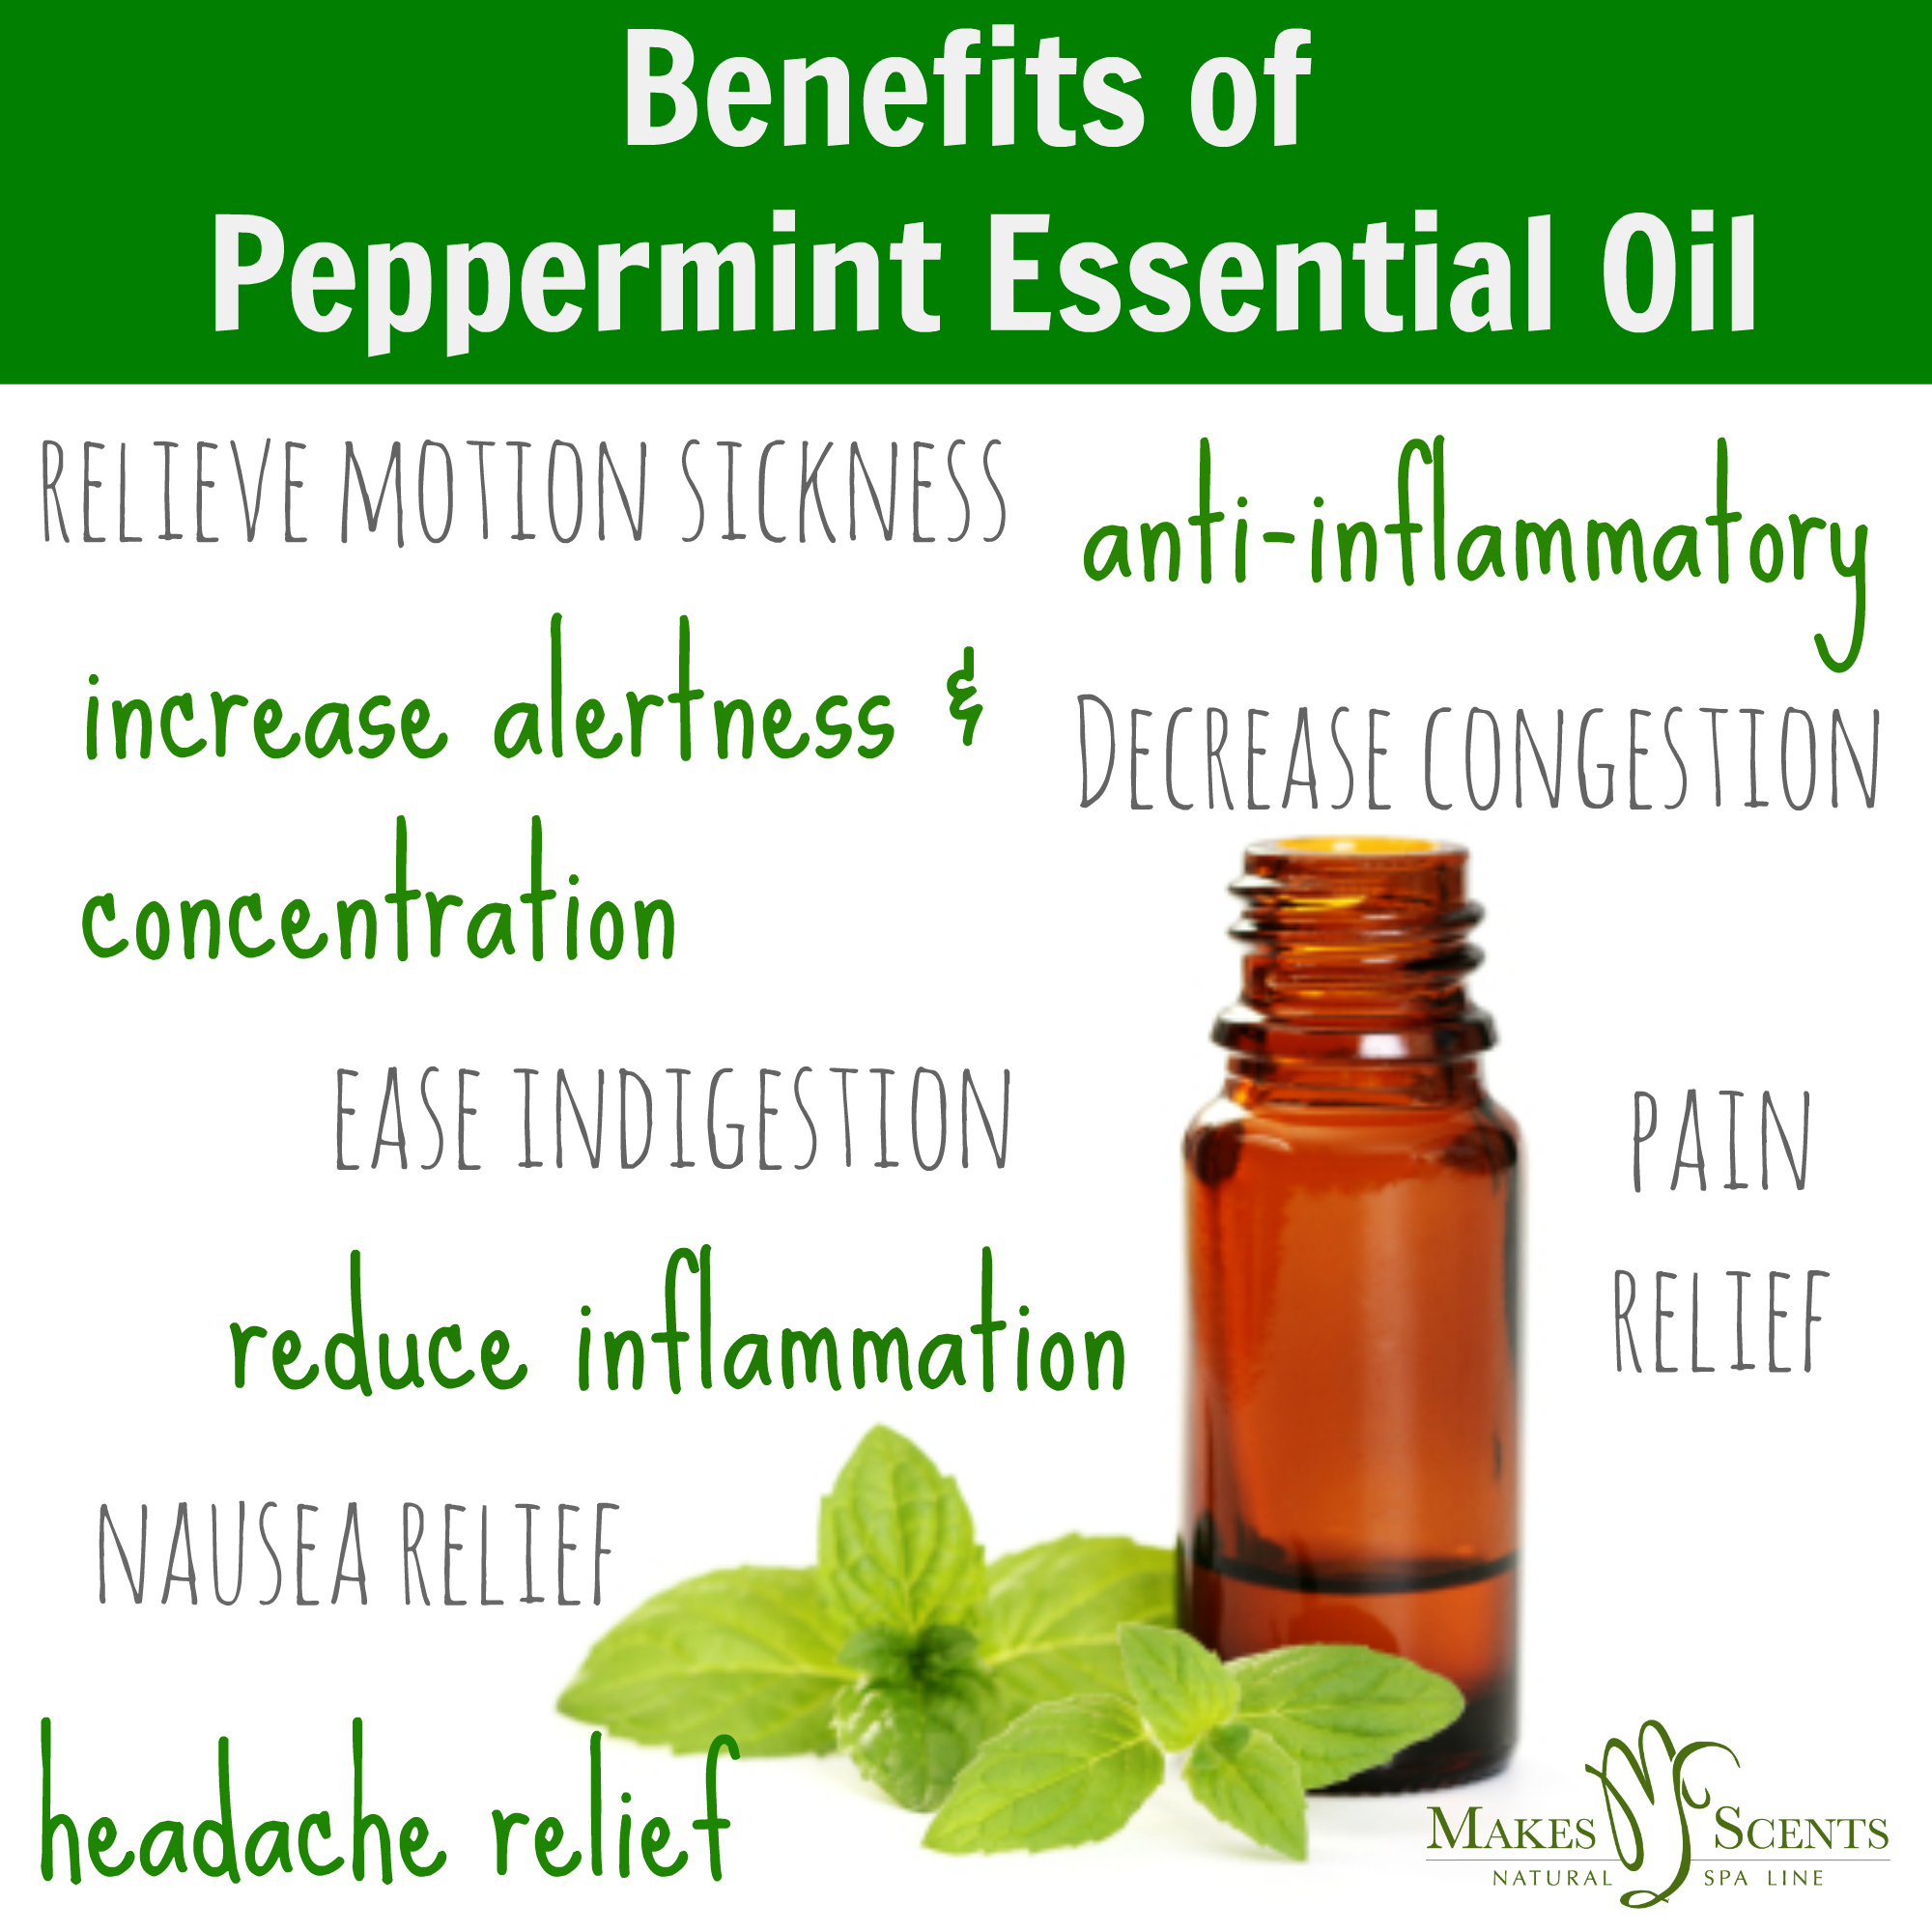 Peppermint Oil Natural Hair Benefits